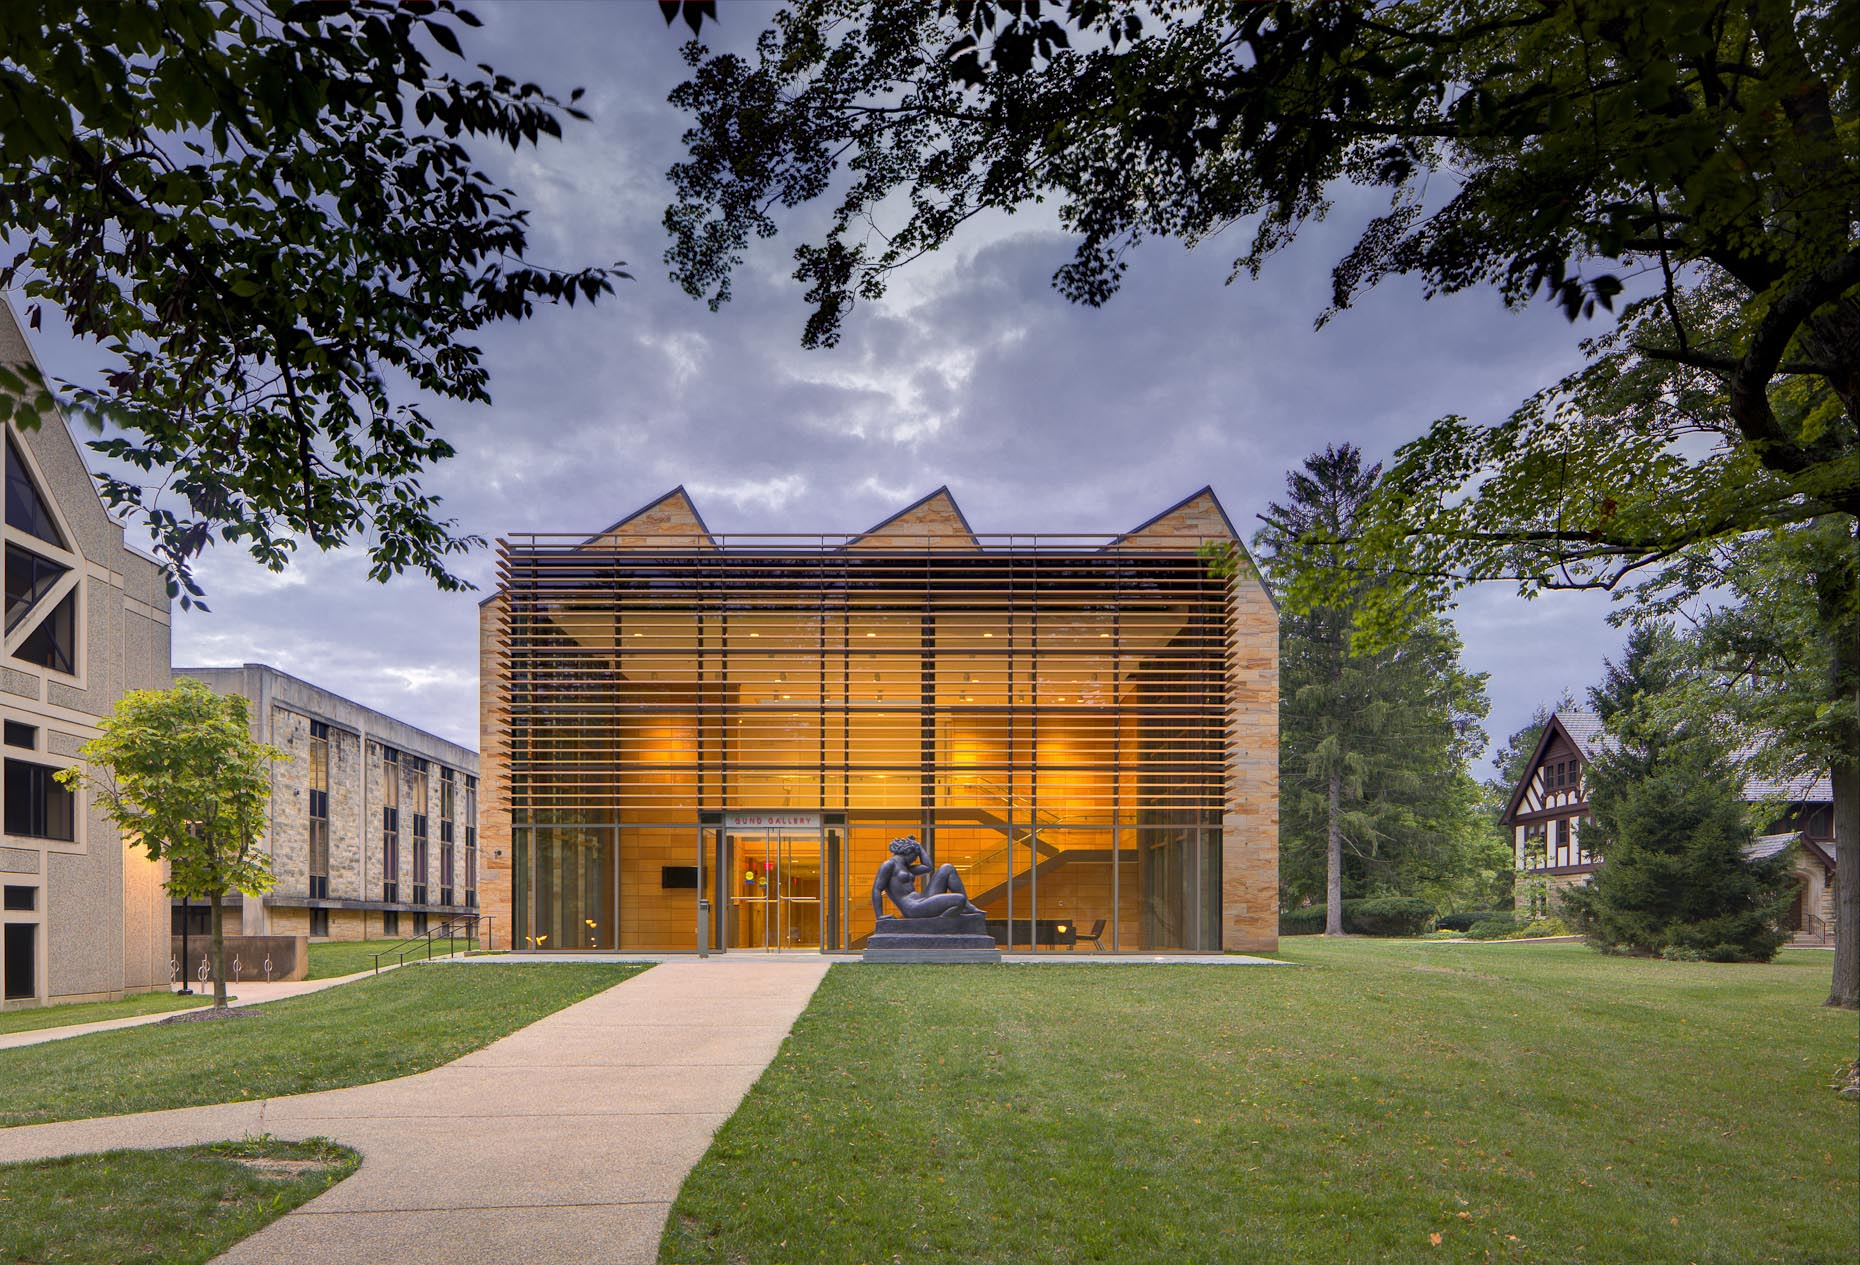 Gund Gallery at Kenyon College by Gund Partnership photographed by Brad Feinknopf based in Columbus, Ohio